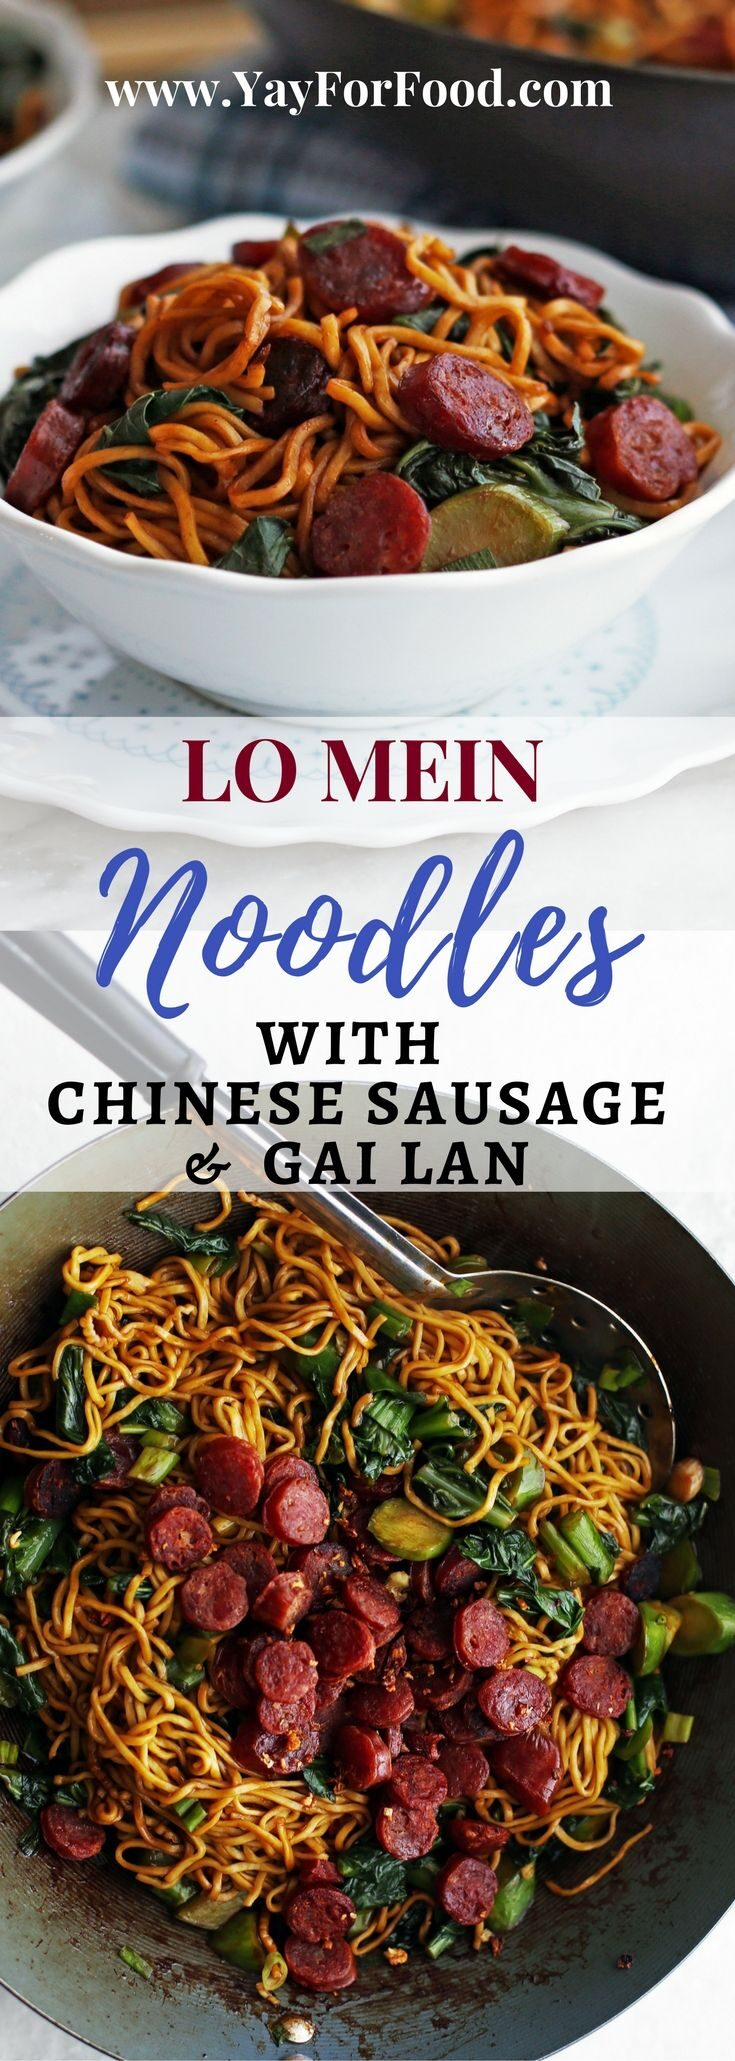 An easy and fast Chinese egg noodle dish loaded with sweet and salty lap cheong (Chinese sausages) and leafy green gai lan (Chinese broccoli).